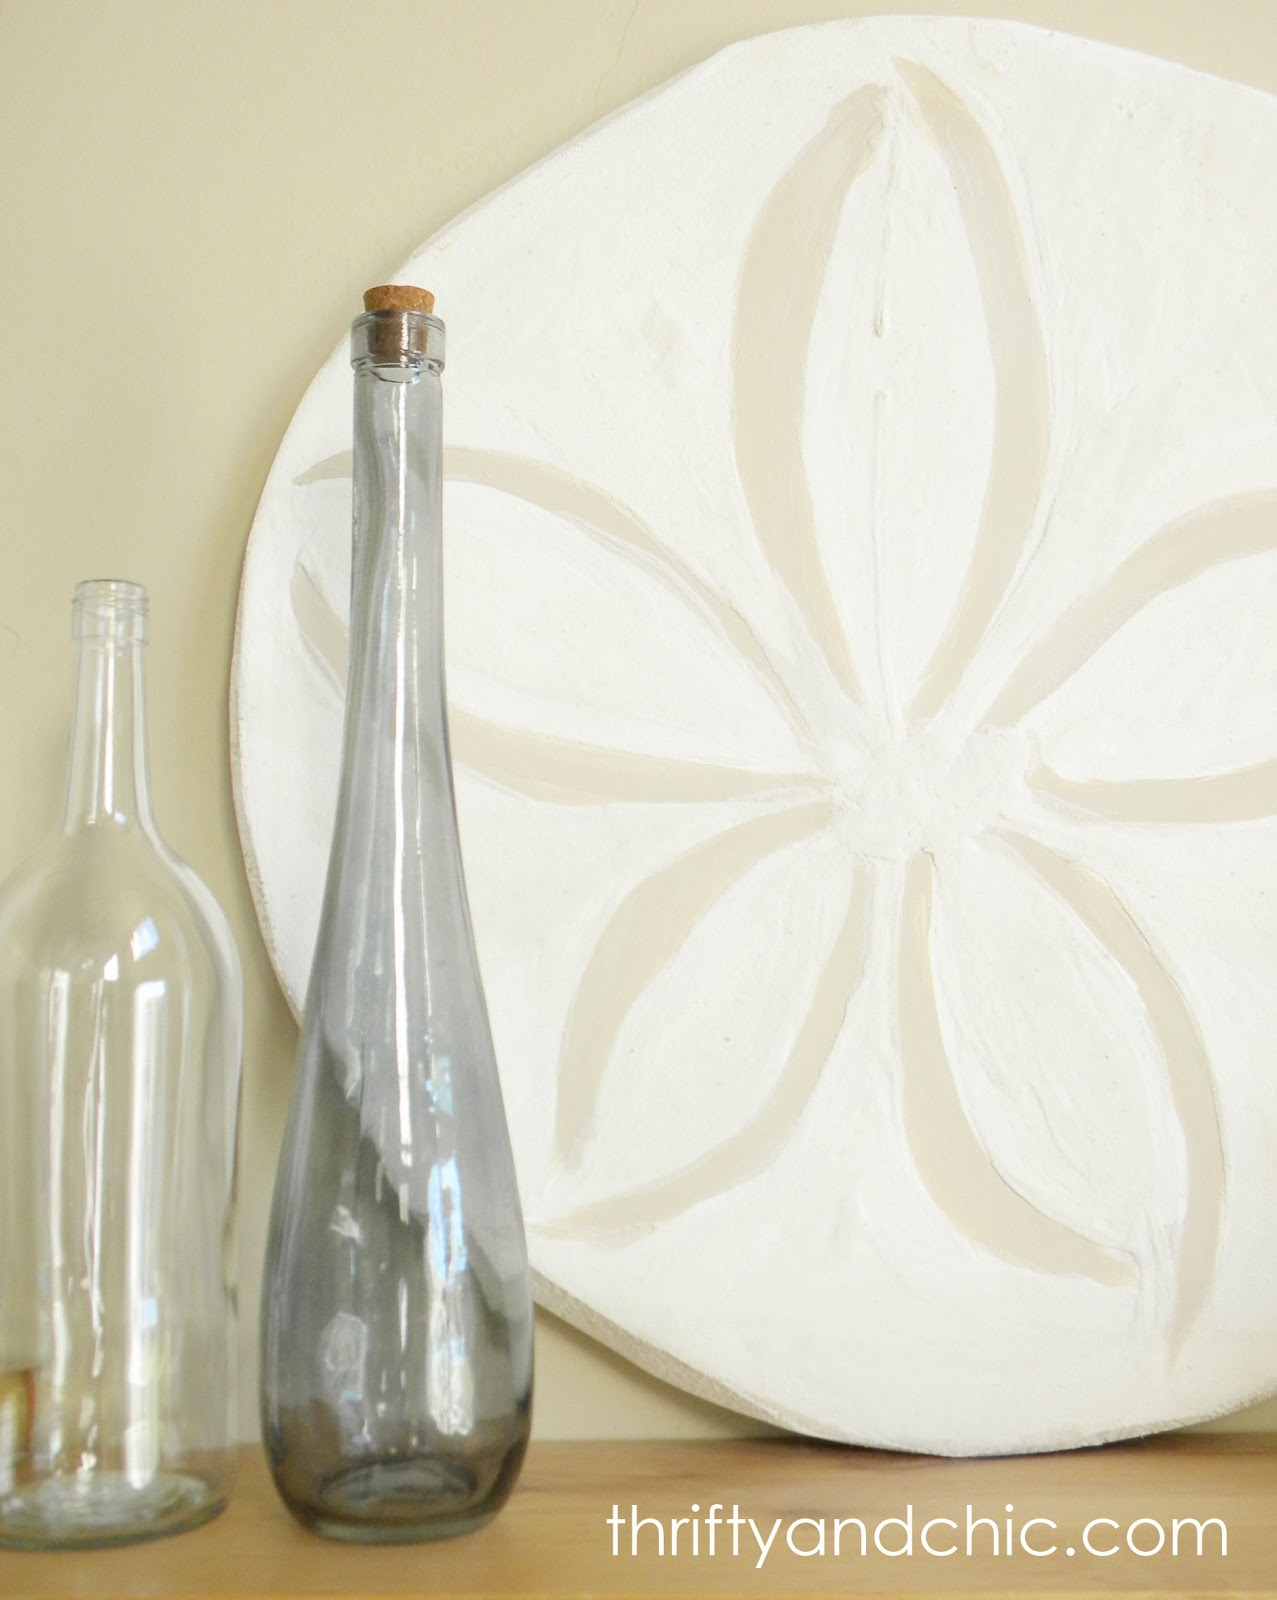 Thrifty and chic diy projects and home decor oversized sand dollar pottery barn reviewsmspy